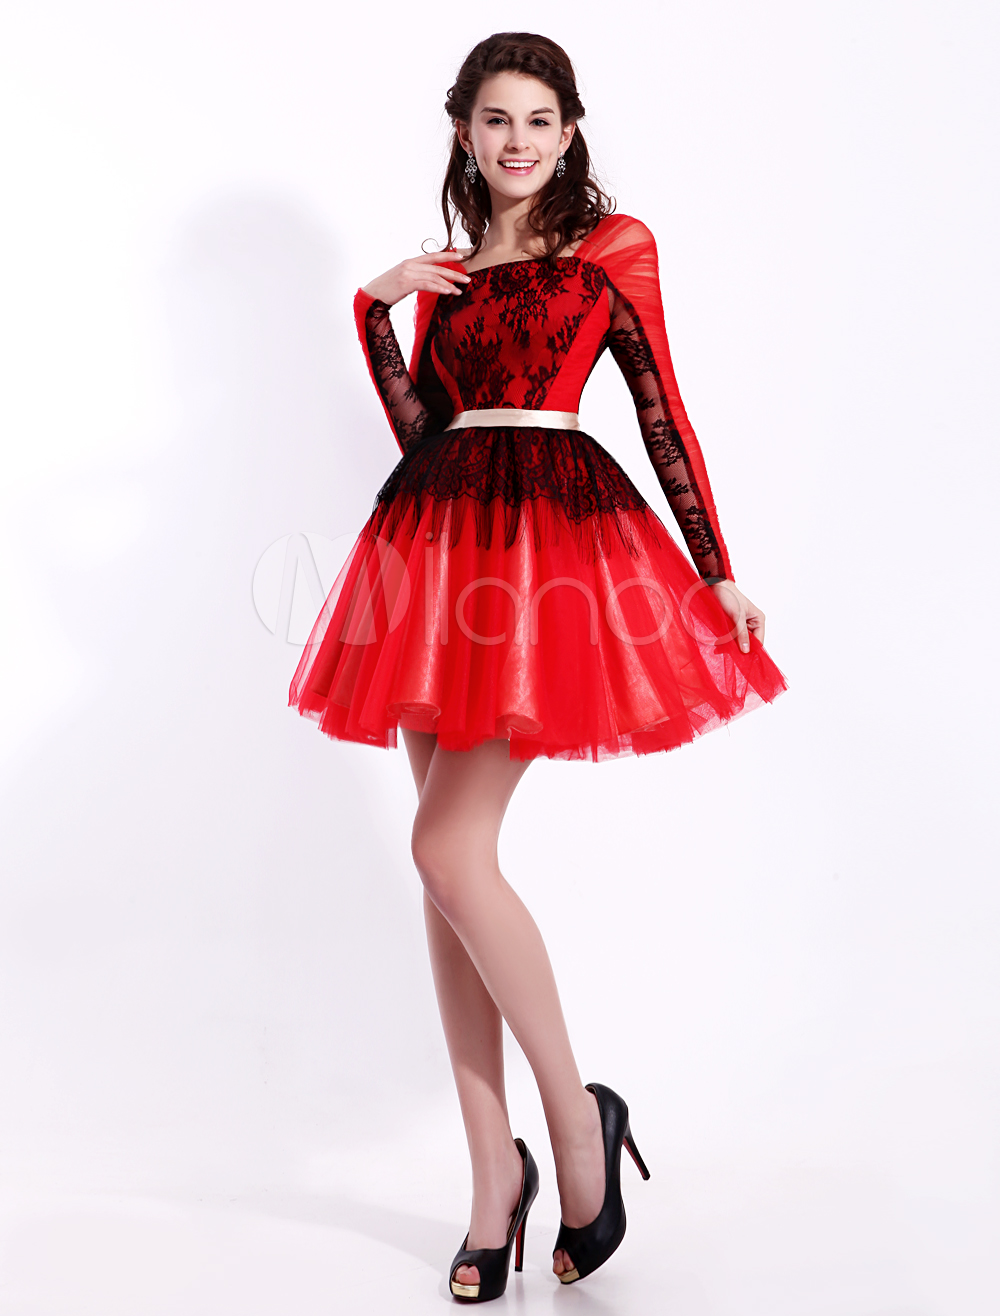 Red Square Neck Long Sleeves Sash A-line Tulle Gorgeous Prom Dress Milanoo (Wedding Prom Dresses) photo